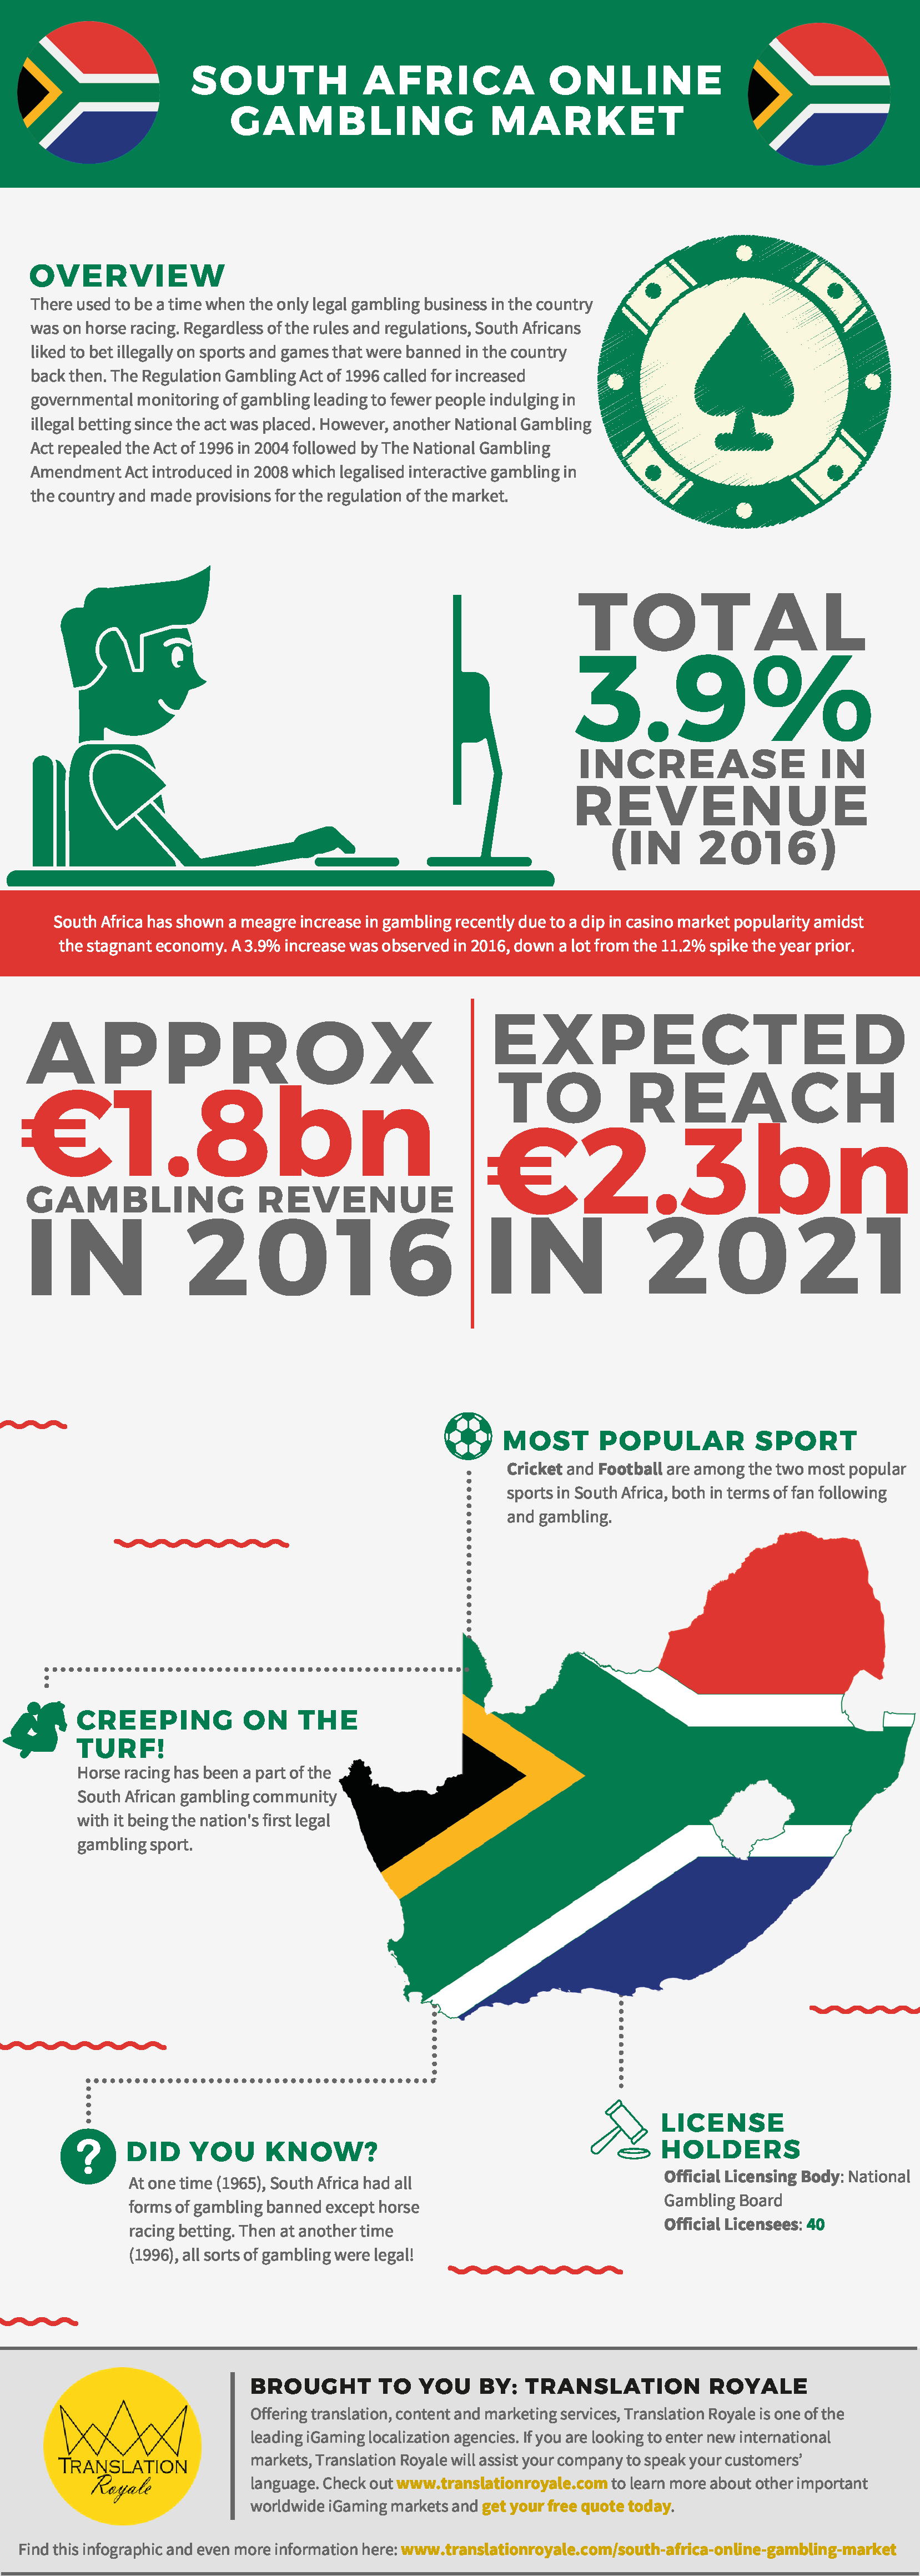 South Africa Online Gambling Market Infographic